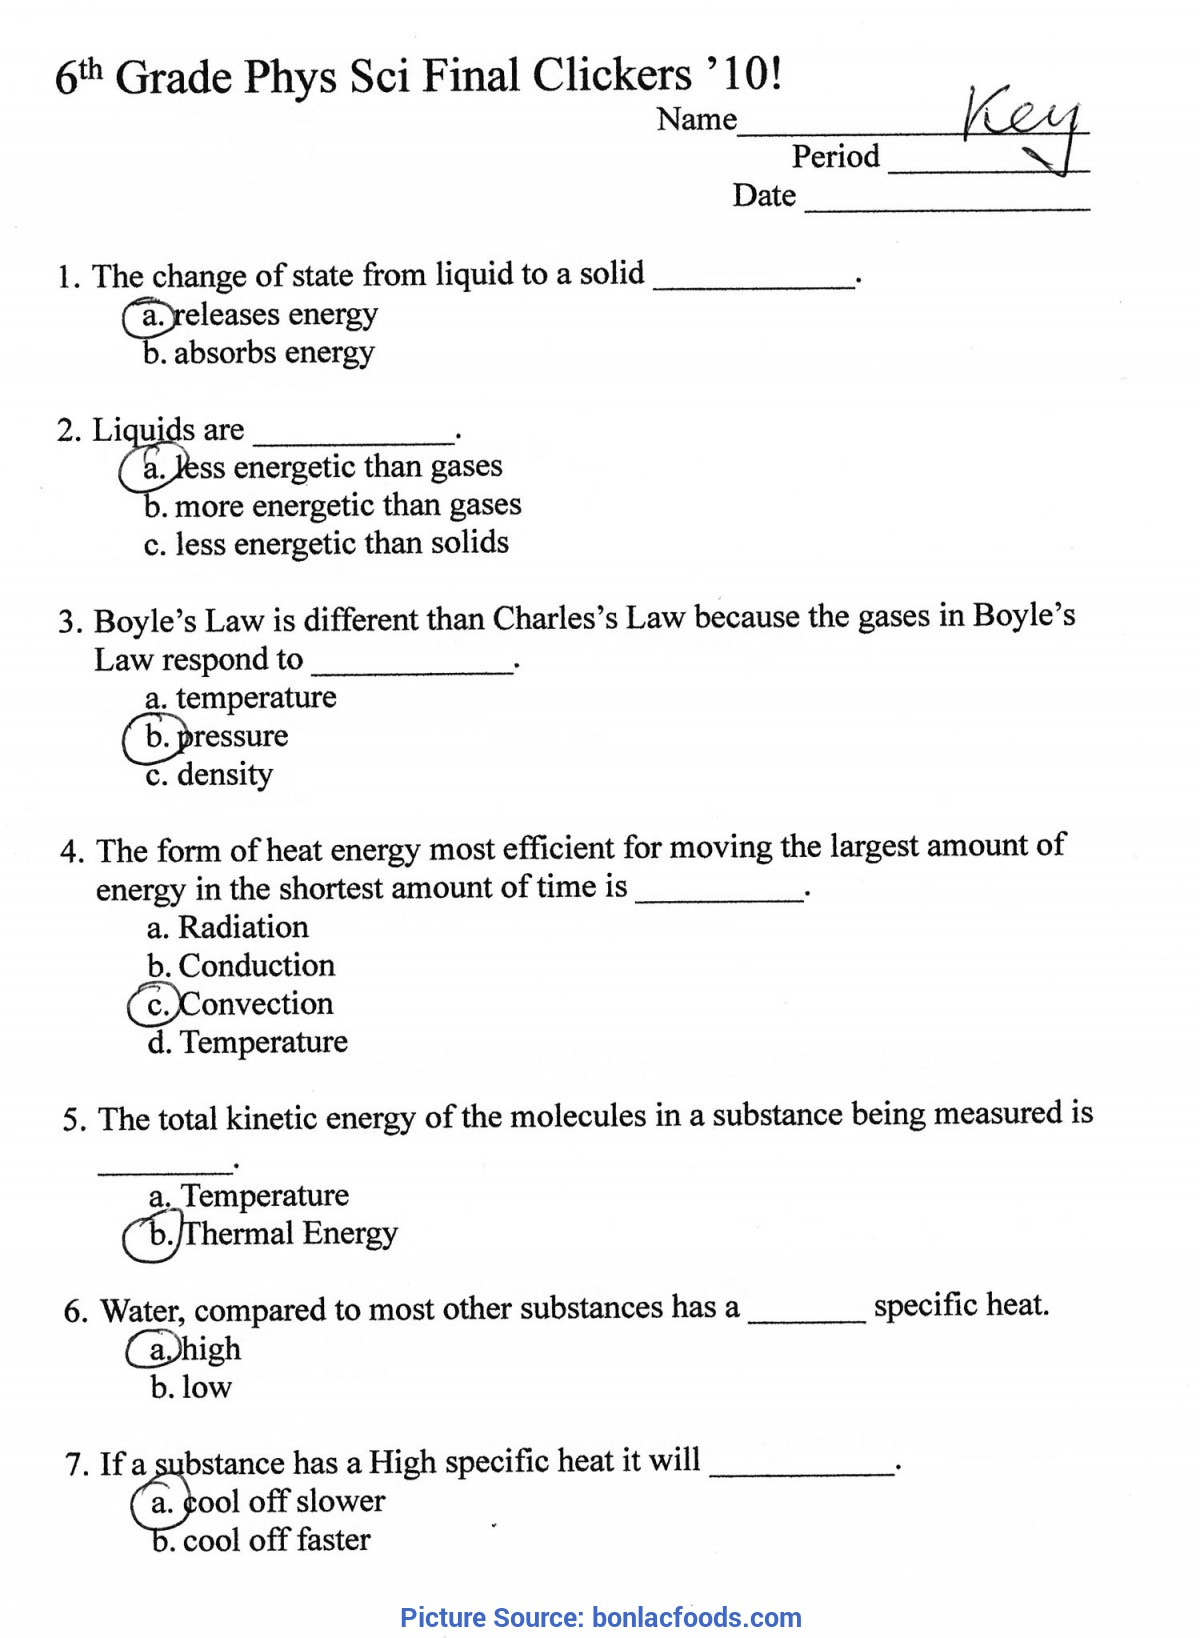 Briliant 6th Grade Science Lessons Free Worksheets For All